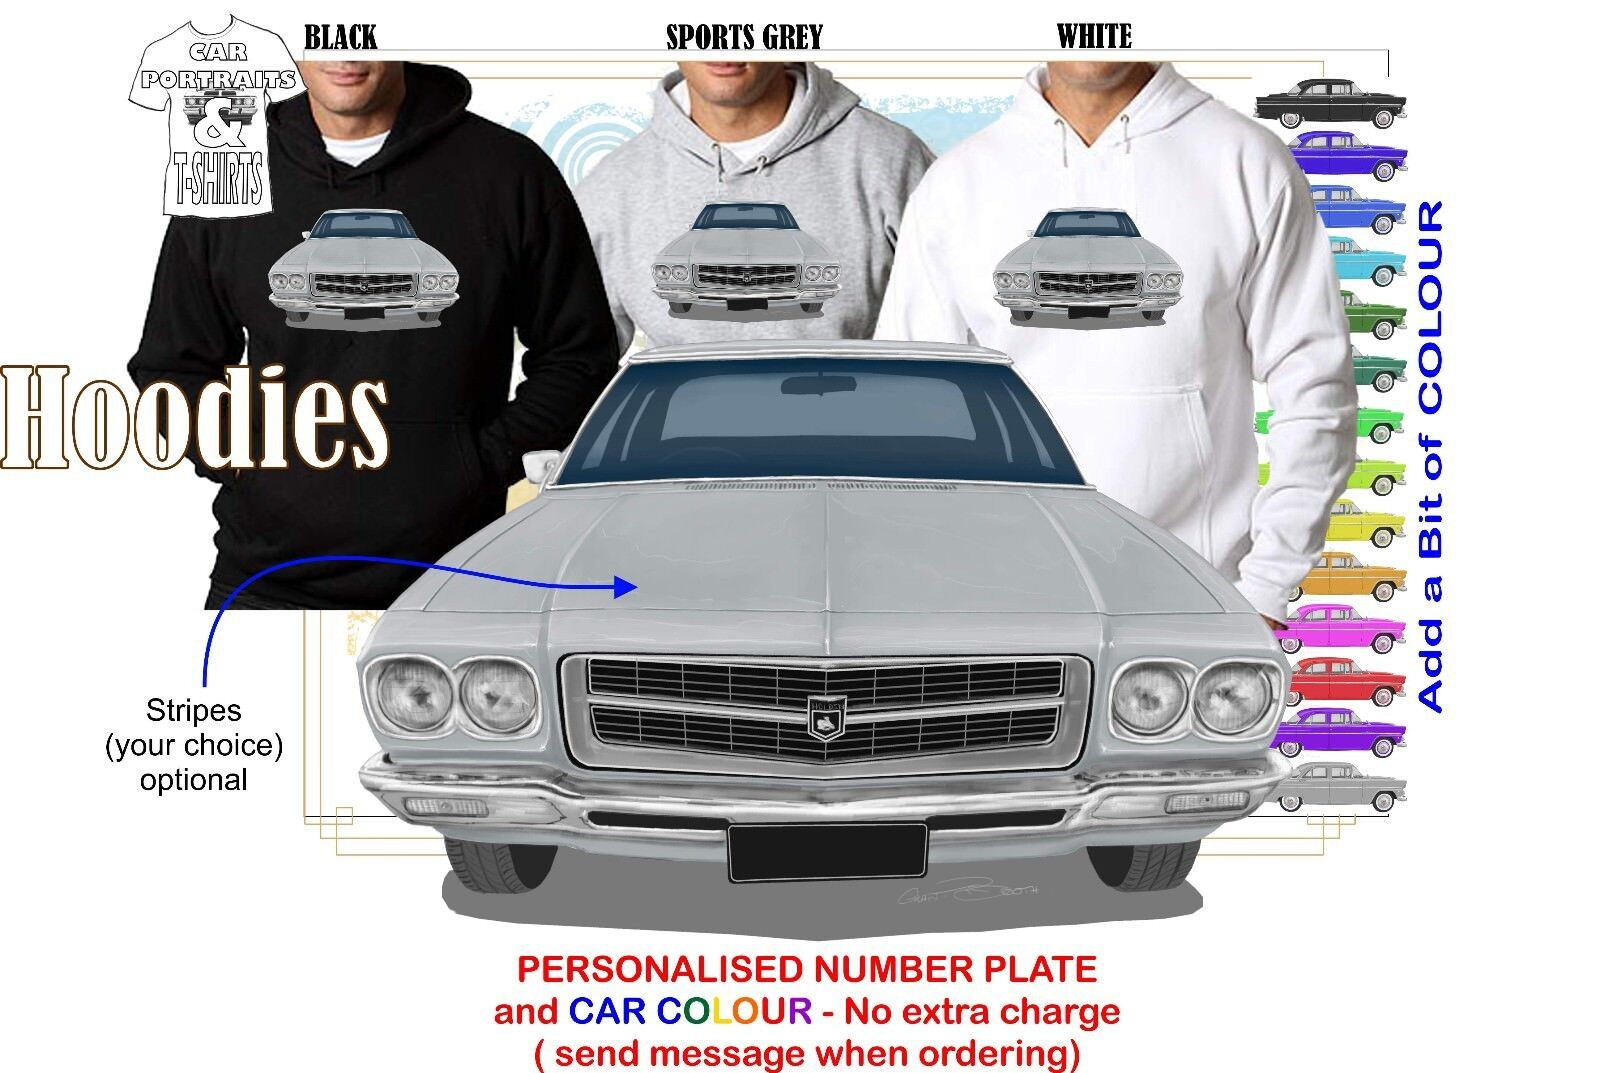 71-74 HQ PREMIER FRONT HOODIE ILLUSTRATED CLASSIC RETRO MUSCLE SPORTS CAR